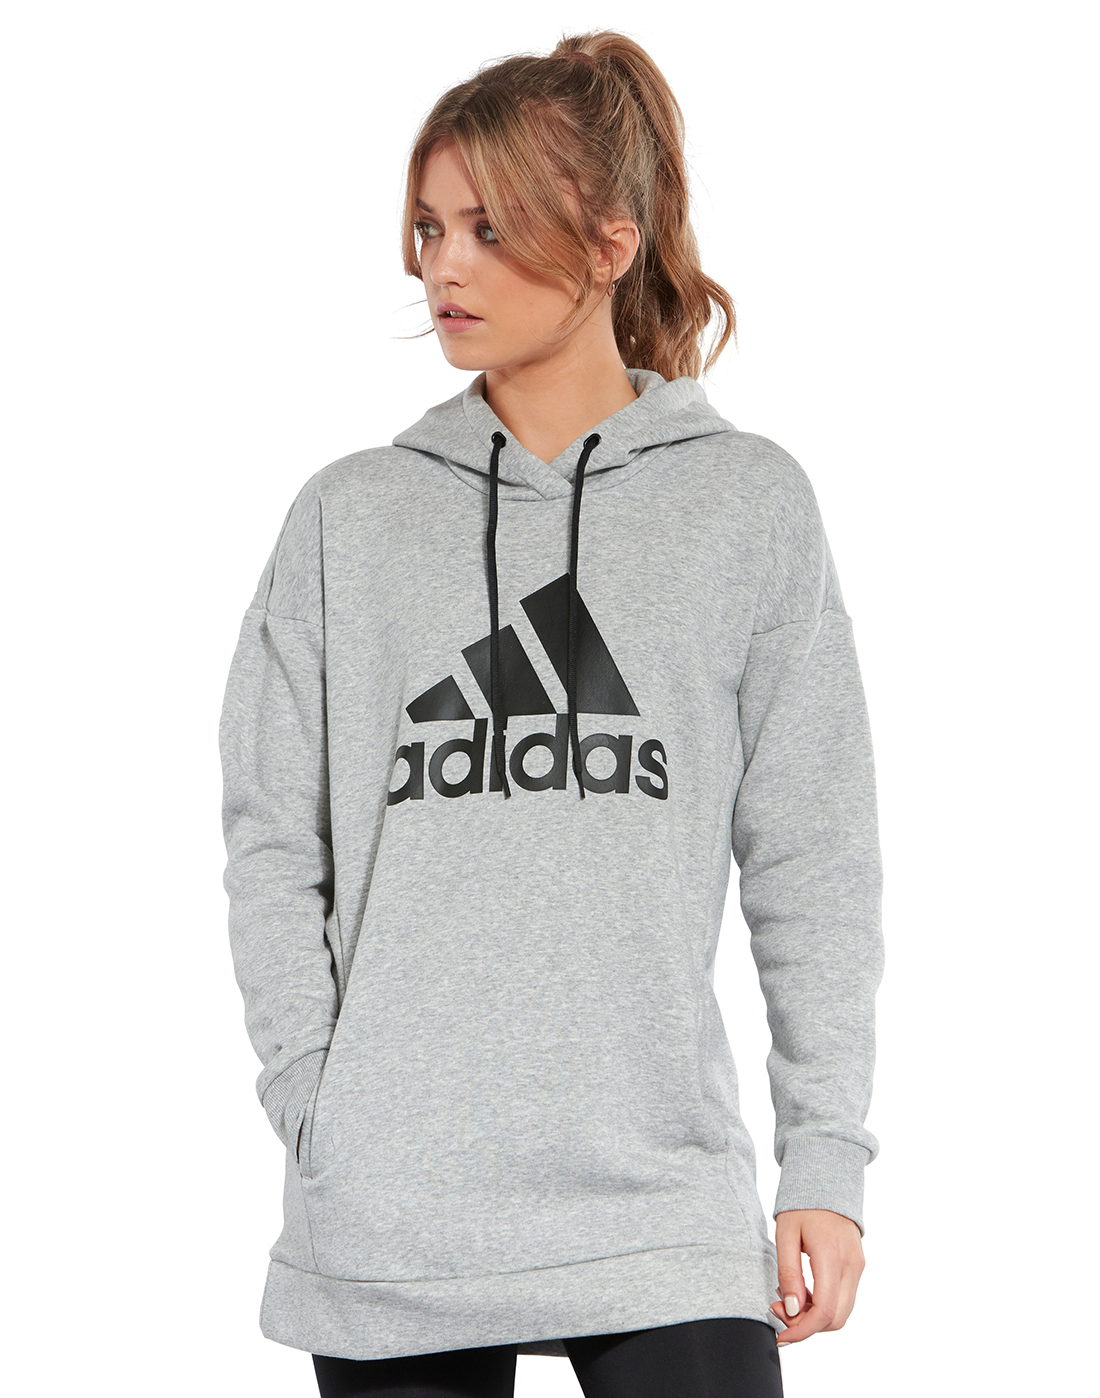 55cddc4697d7 Women's Grey adidas Hoodie | Life Style Sports